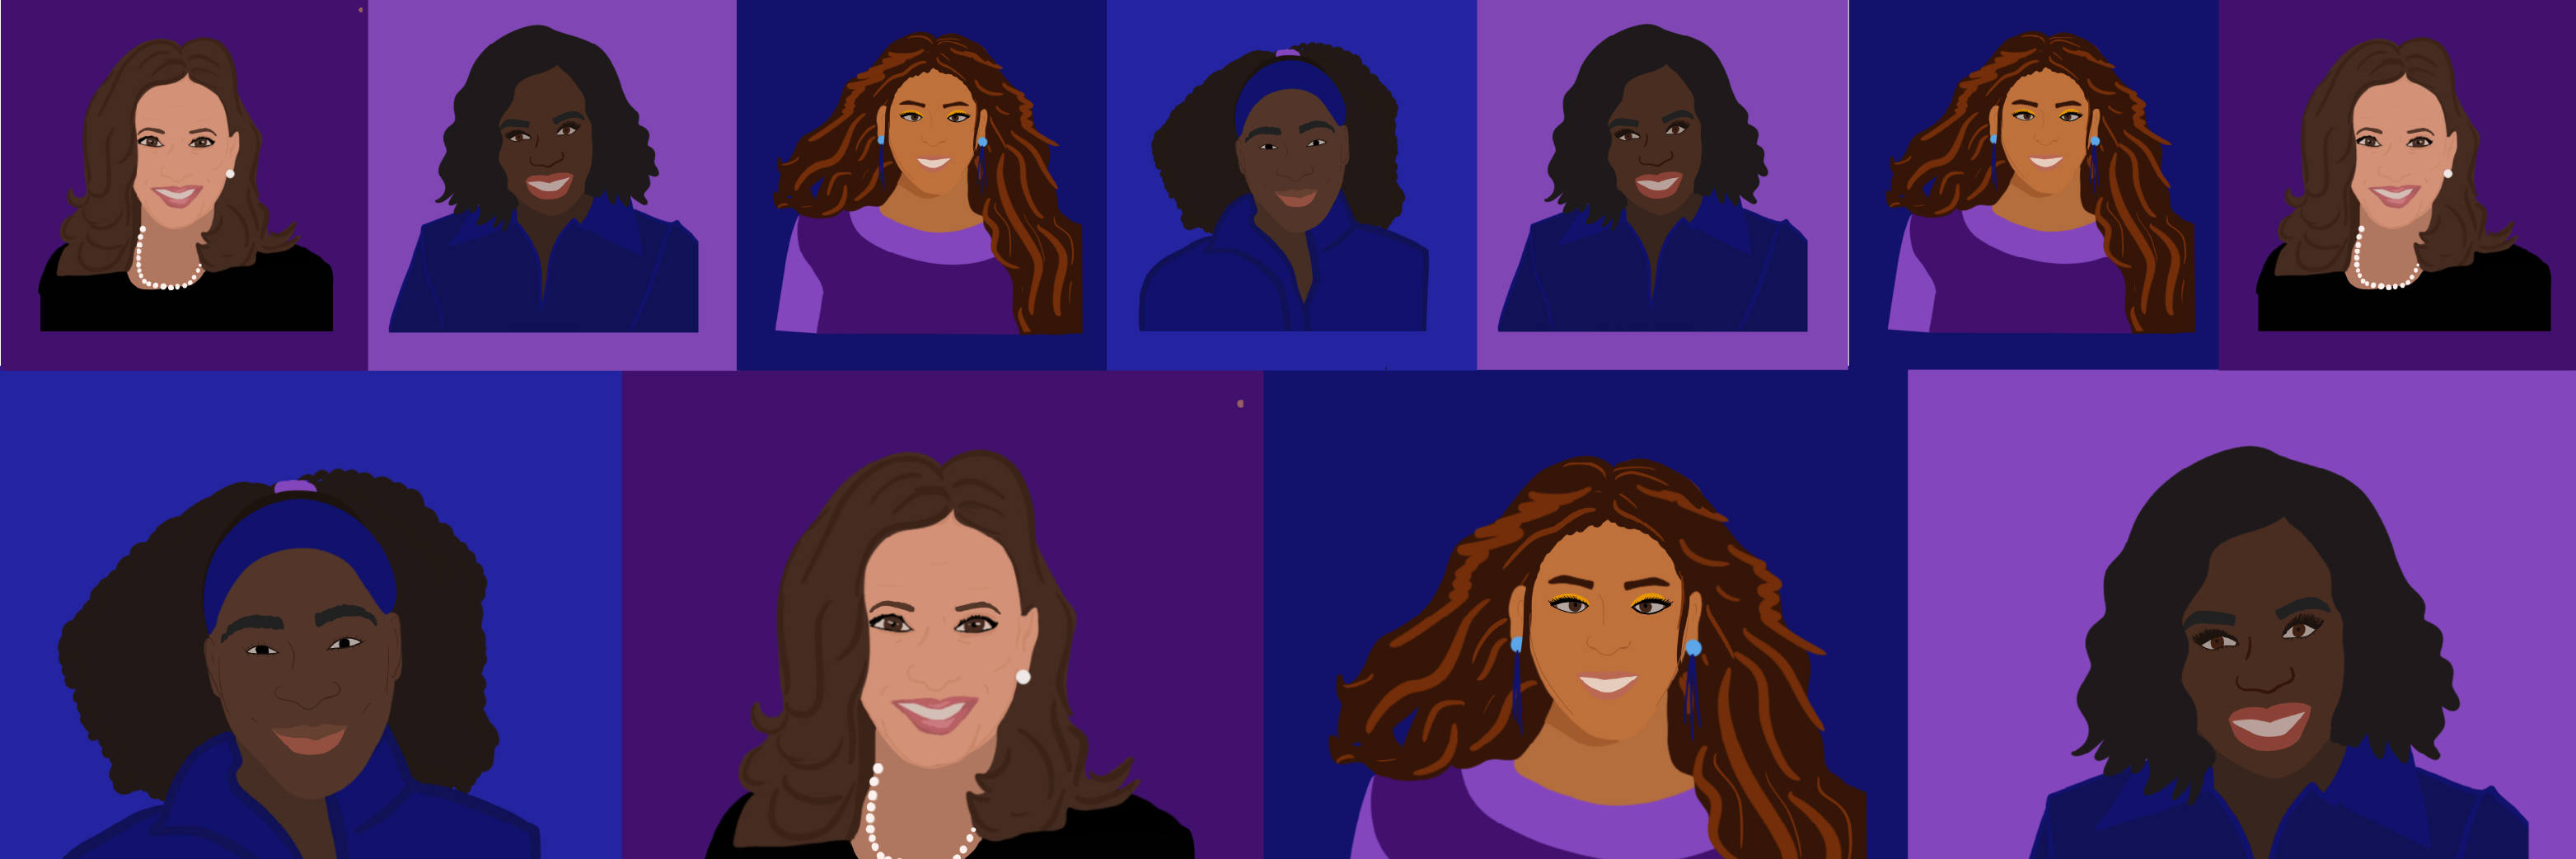 Black History Month banner image of multiple headshots with purple and blue backgrounds.